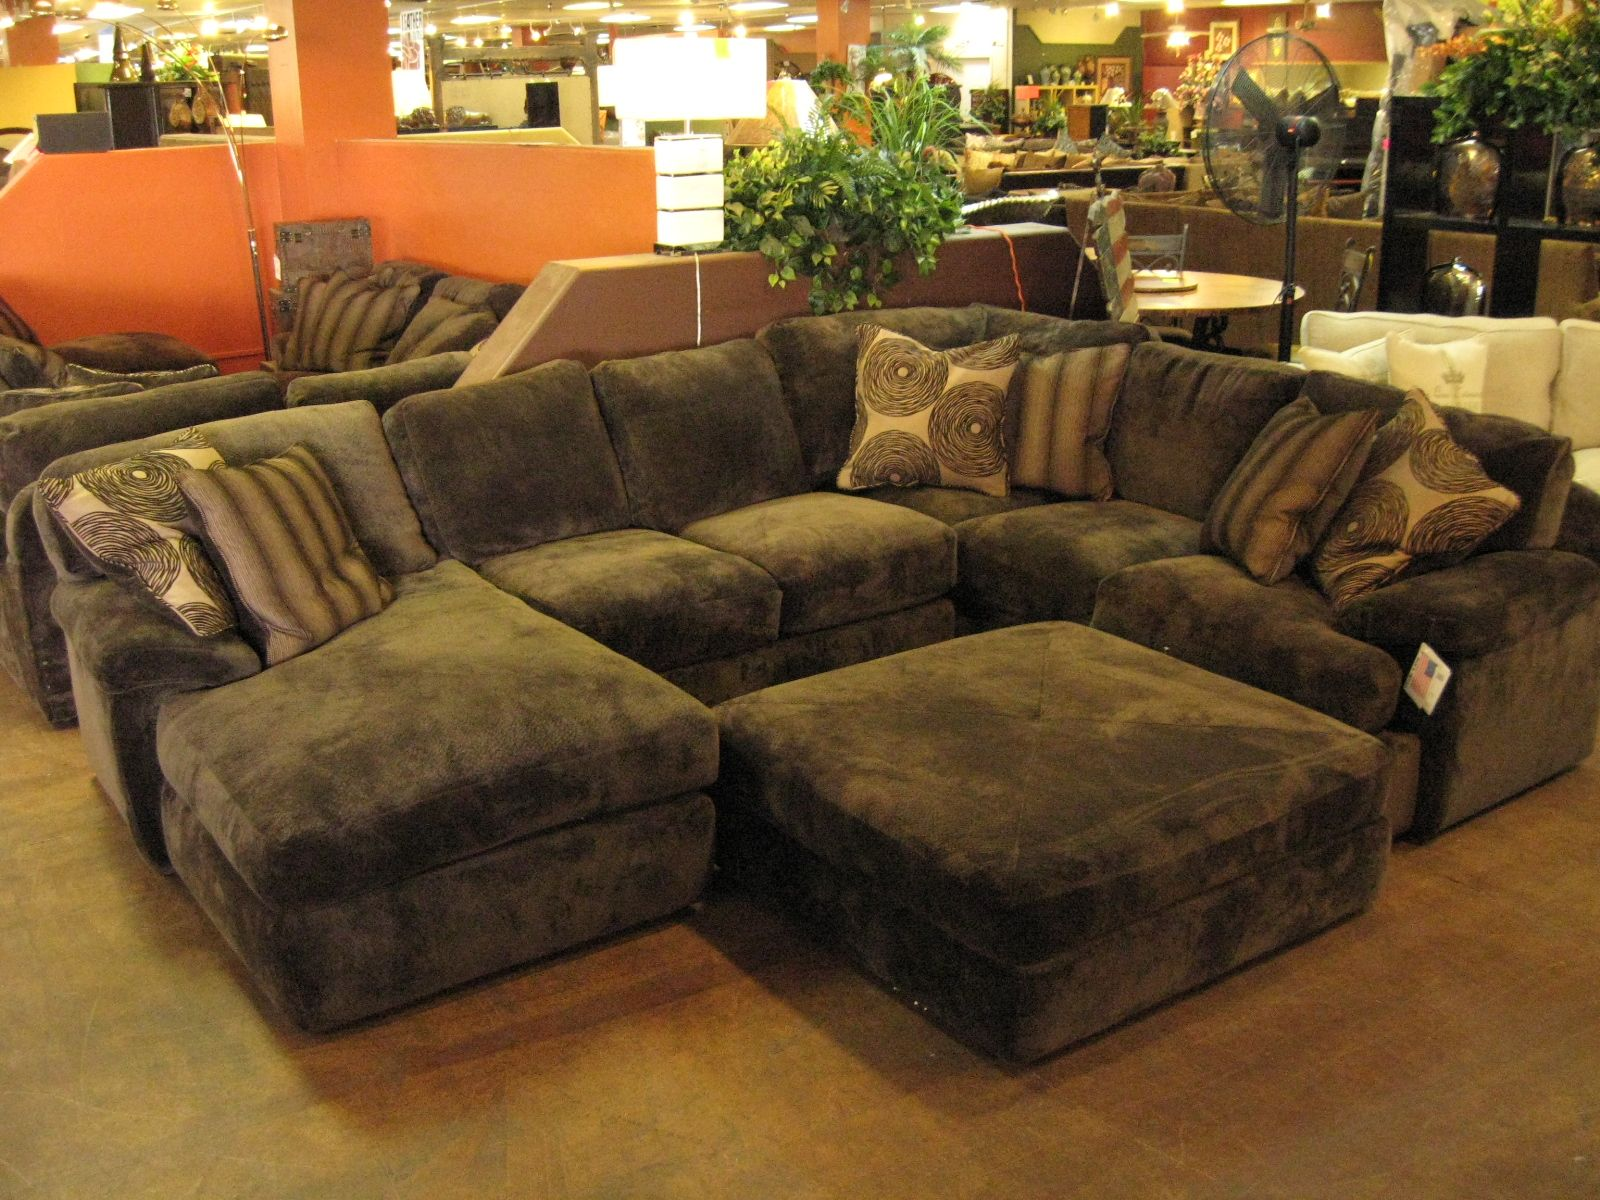 Pit Group Couches In 2020 Large Sectional Sofa Comfy Sectional Sectional Sofa Comfy